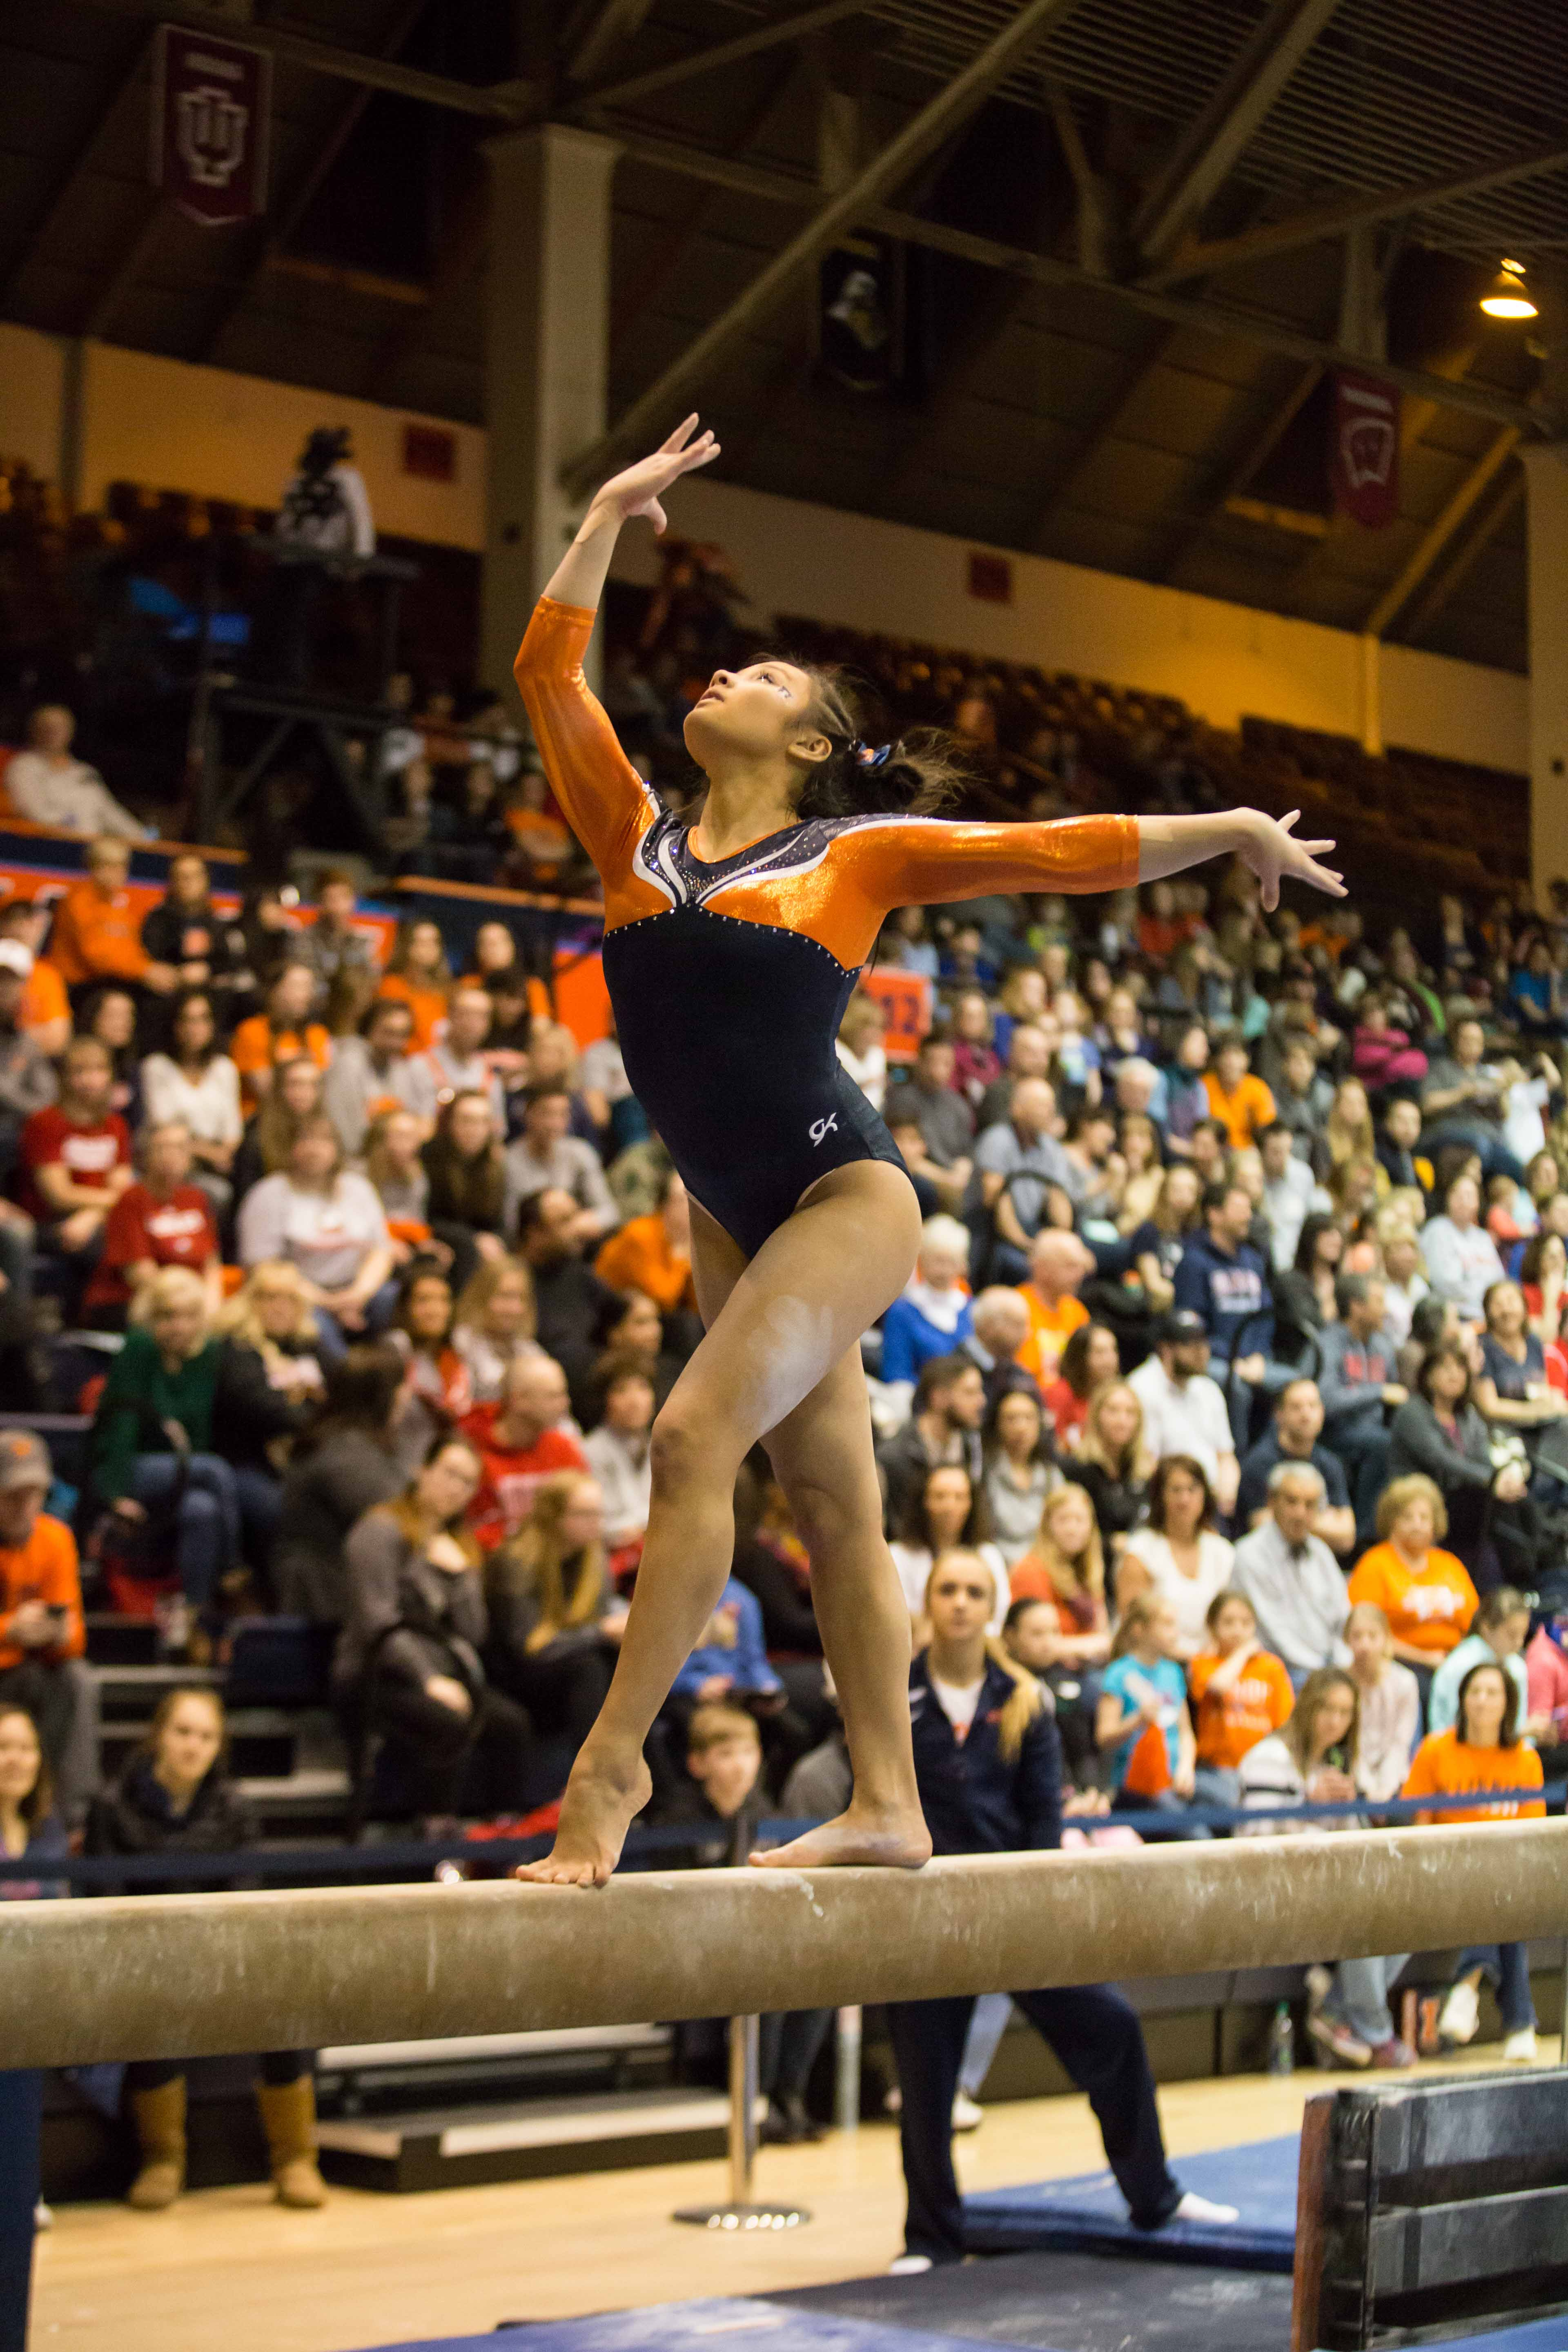 Illinois' Lizzy LeDuc performs a routine on the balance beam during the State of Illinois Classic at Huff Hall on March 5, 2015.  LeDuc was named Big Ten Gymnast of the Week for her performance in the Illini's home opening meet. It is her second time earning the honor.